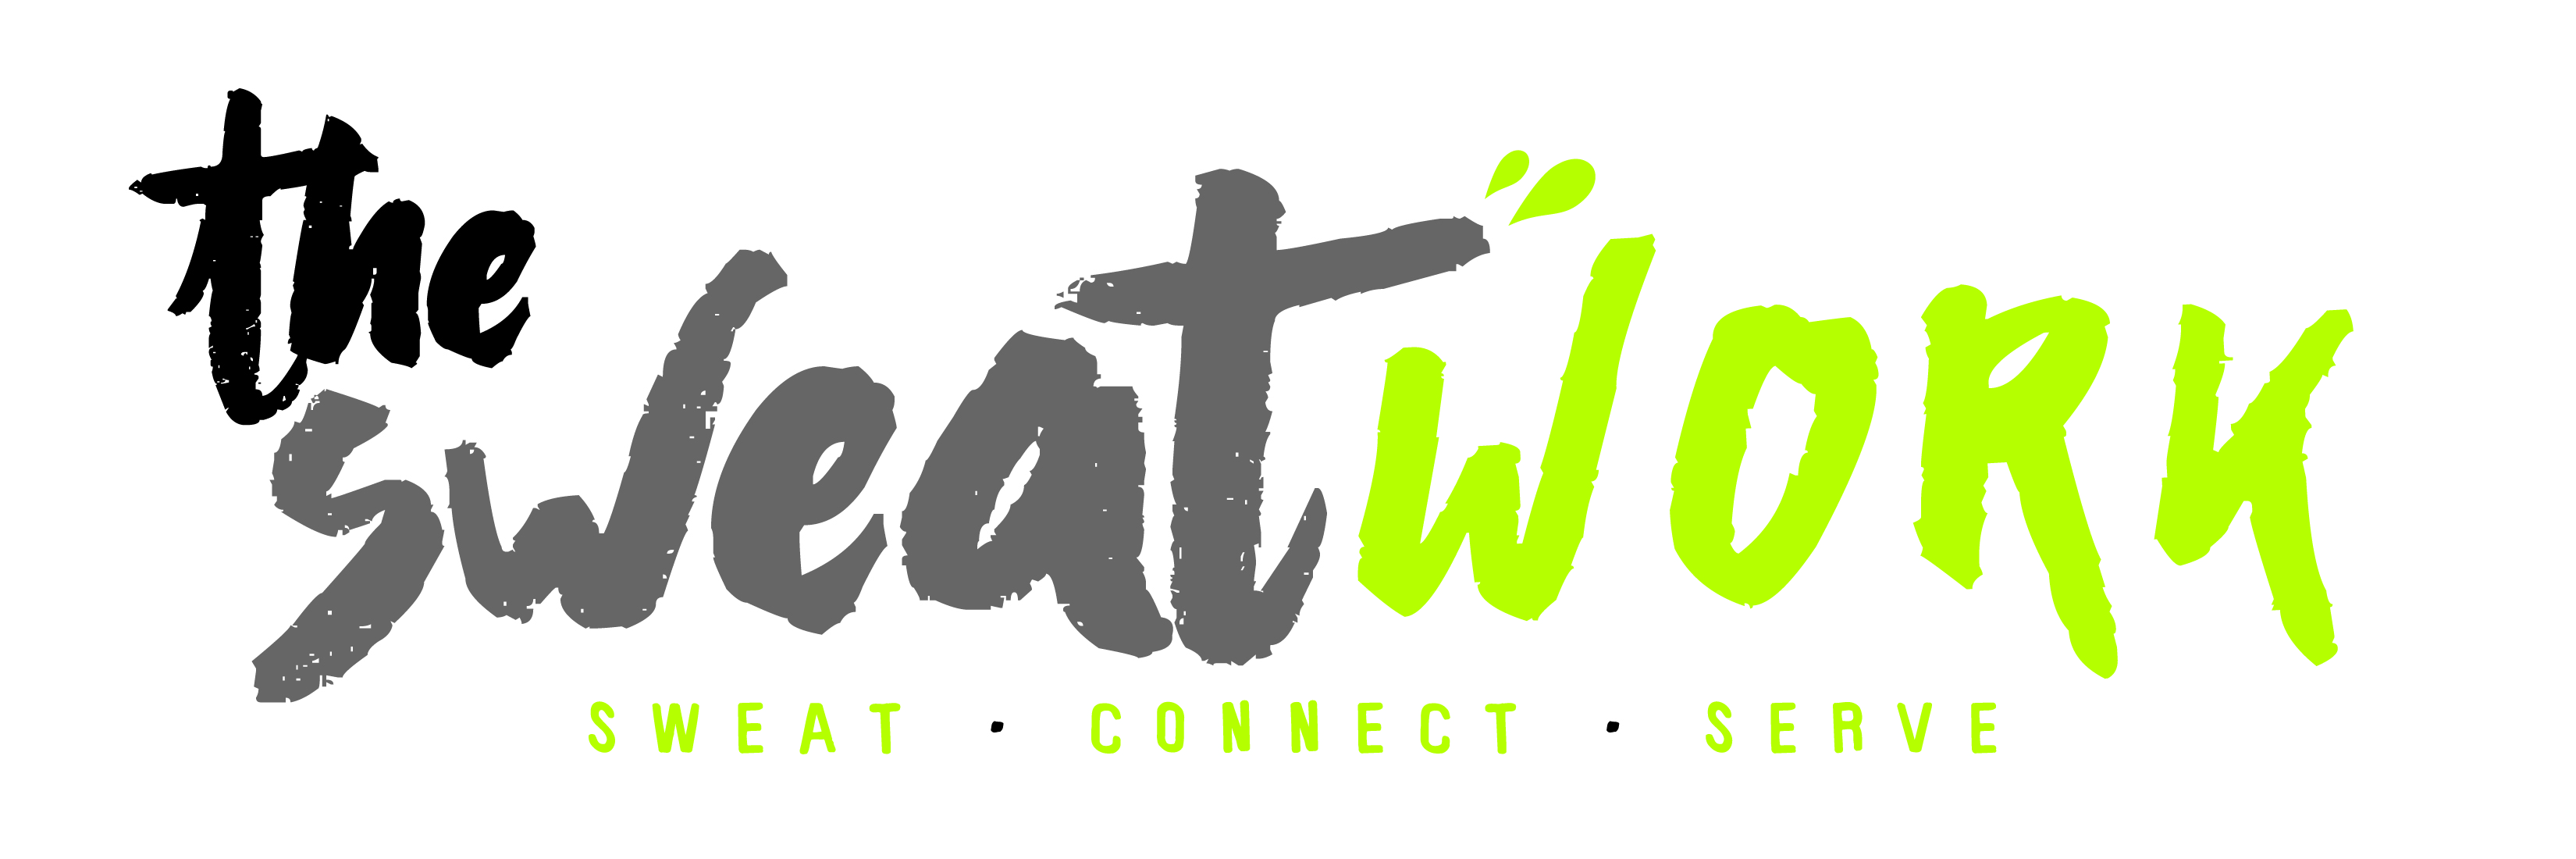 The Sweatwork: Sweat, Connect & Serve @ Mission Brewery   San Diego   California   United States